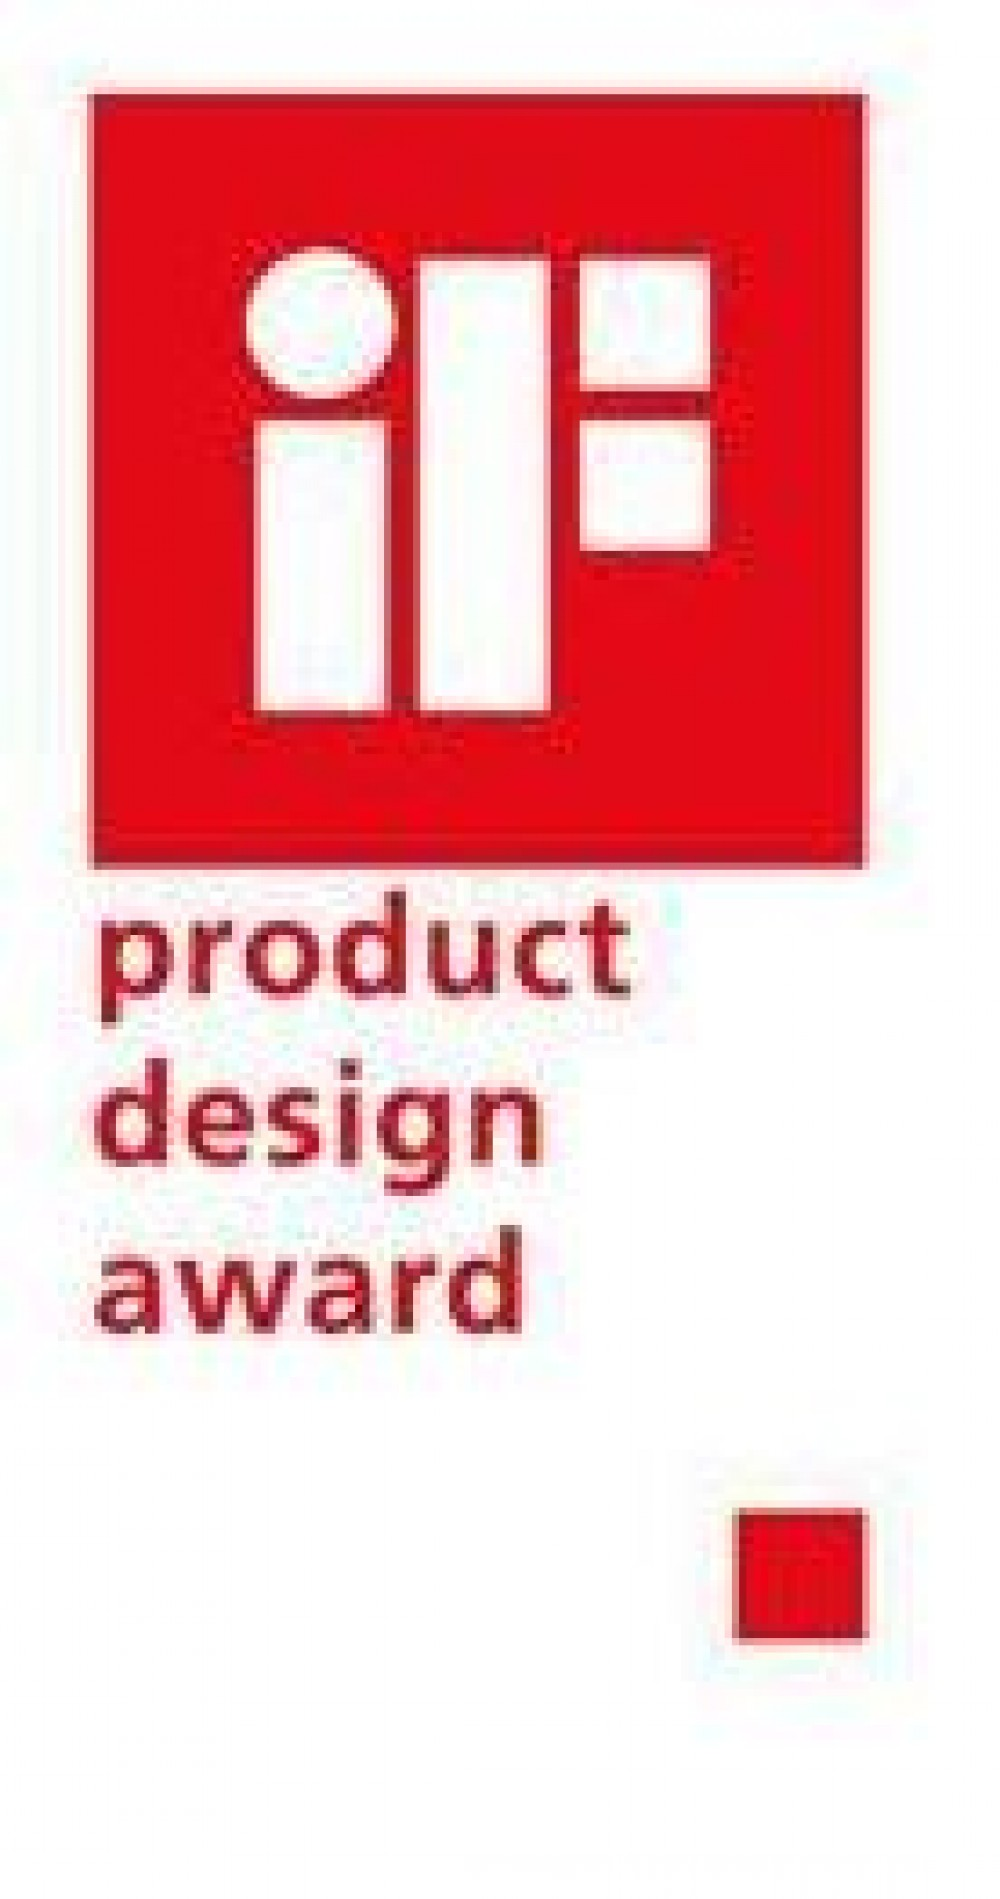 toto washlet IF product design award japanese bidet toilets